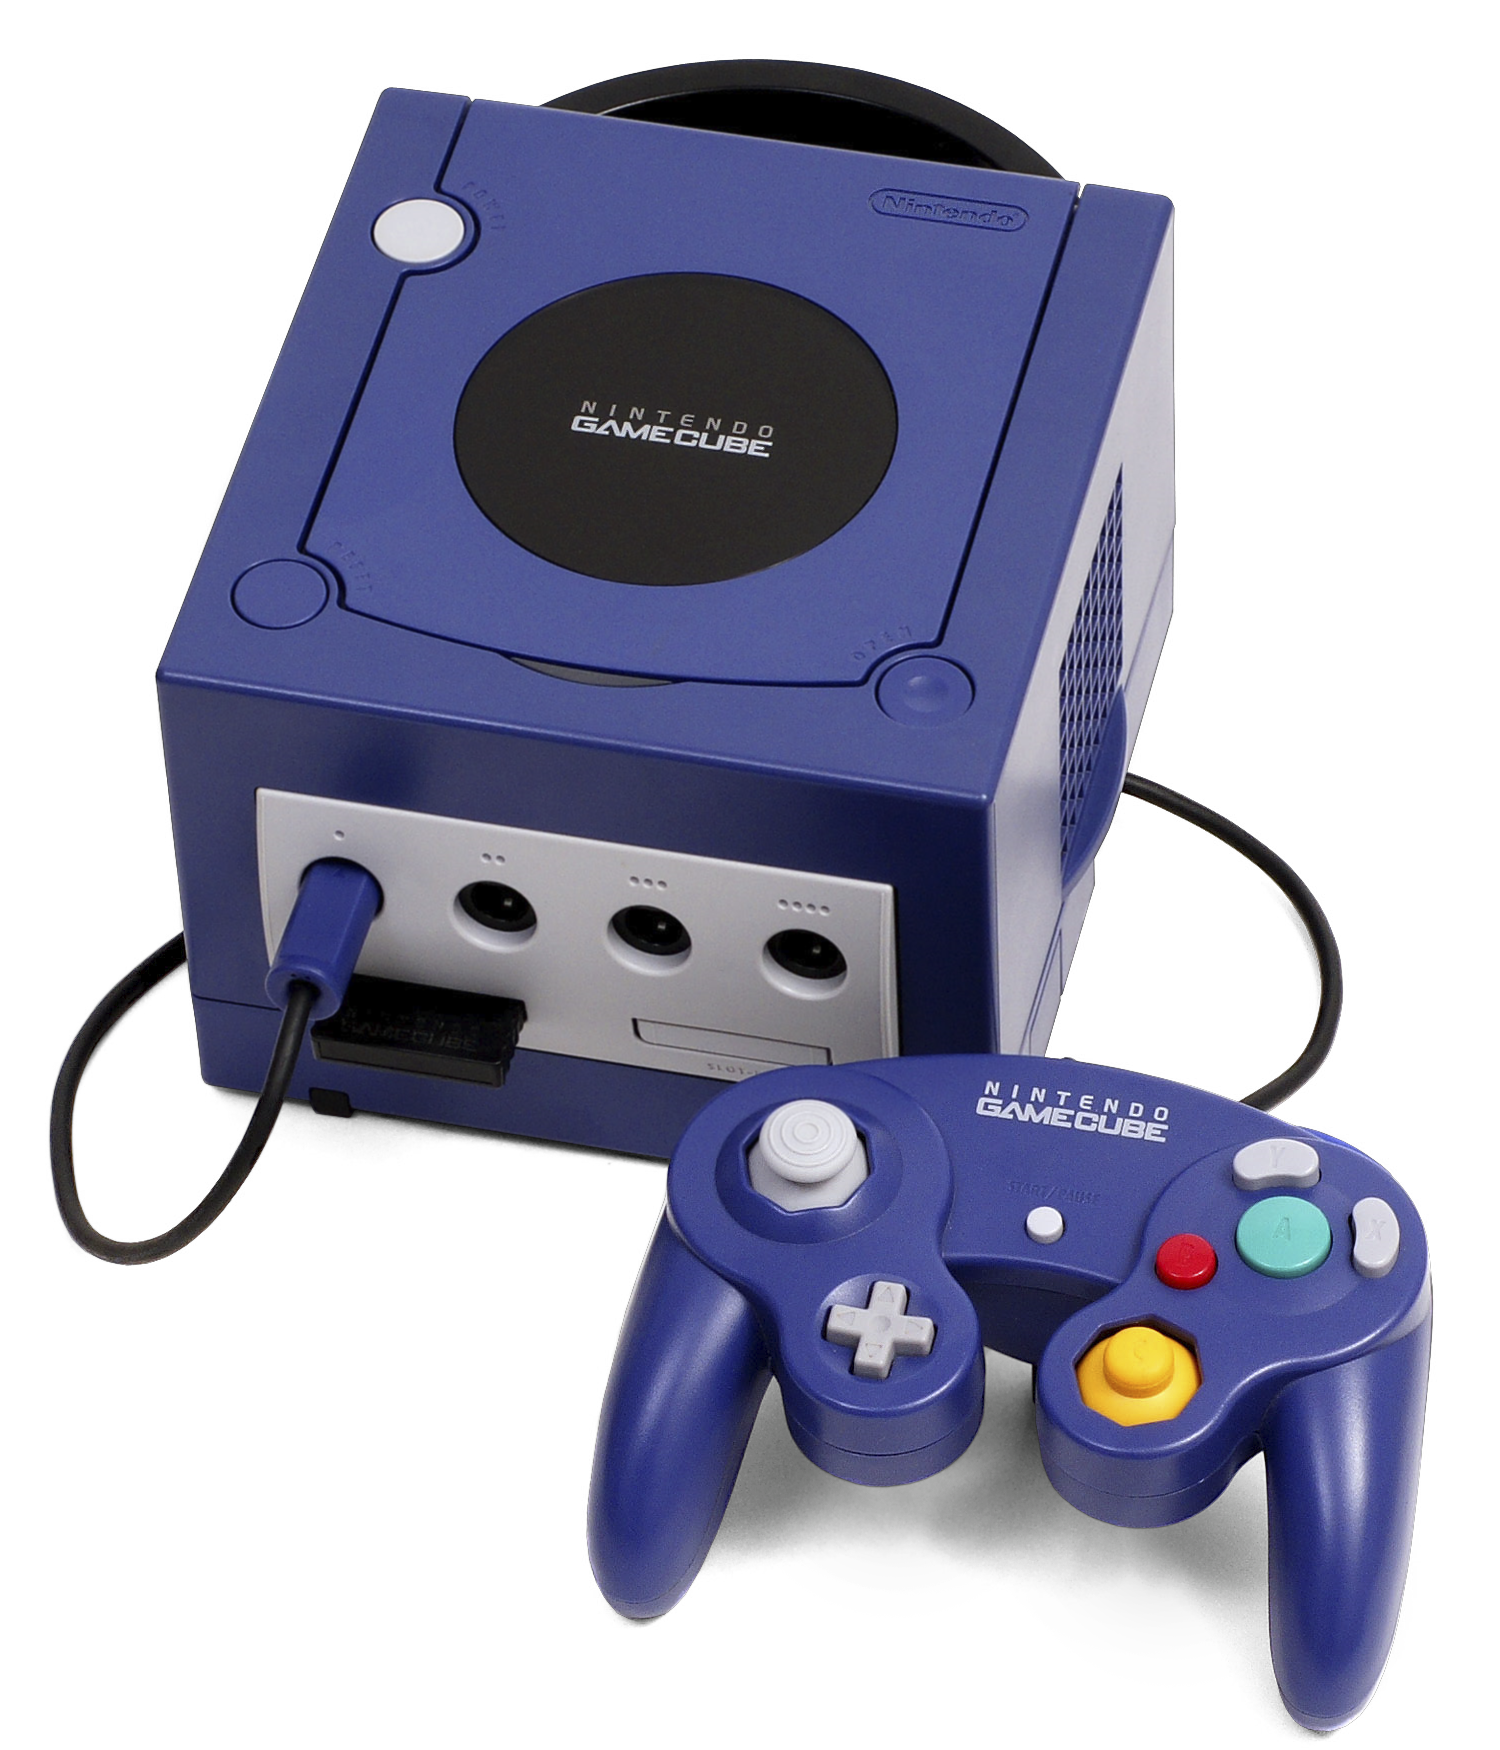 File gamecube wikimedia commons - Console plexiglas transparent ...